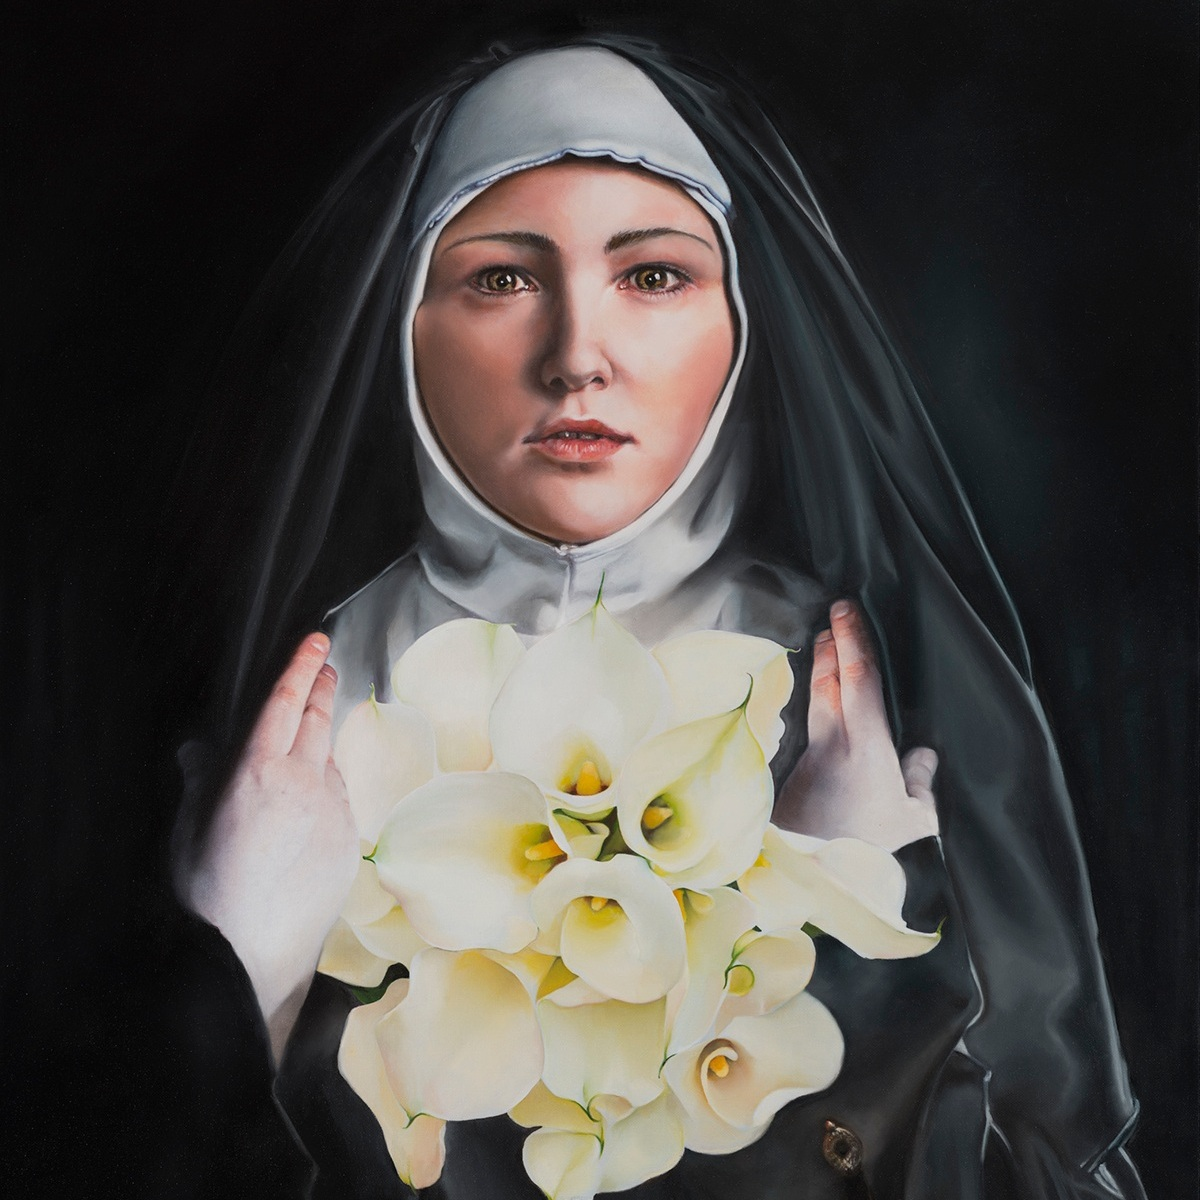 AMONG THE WHITE LILIES   28 x 35 inches, oil on canvas, 2018     Inspired from the story of Saint Theresa.